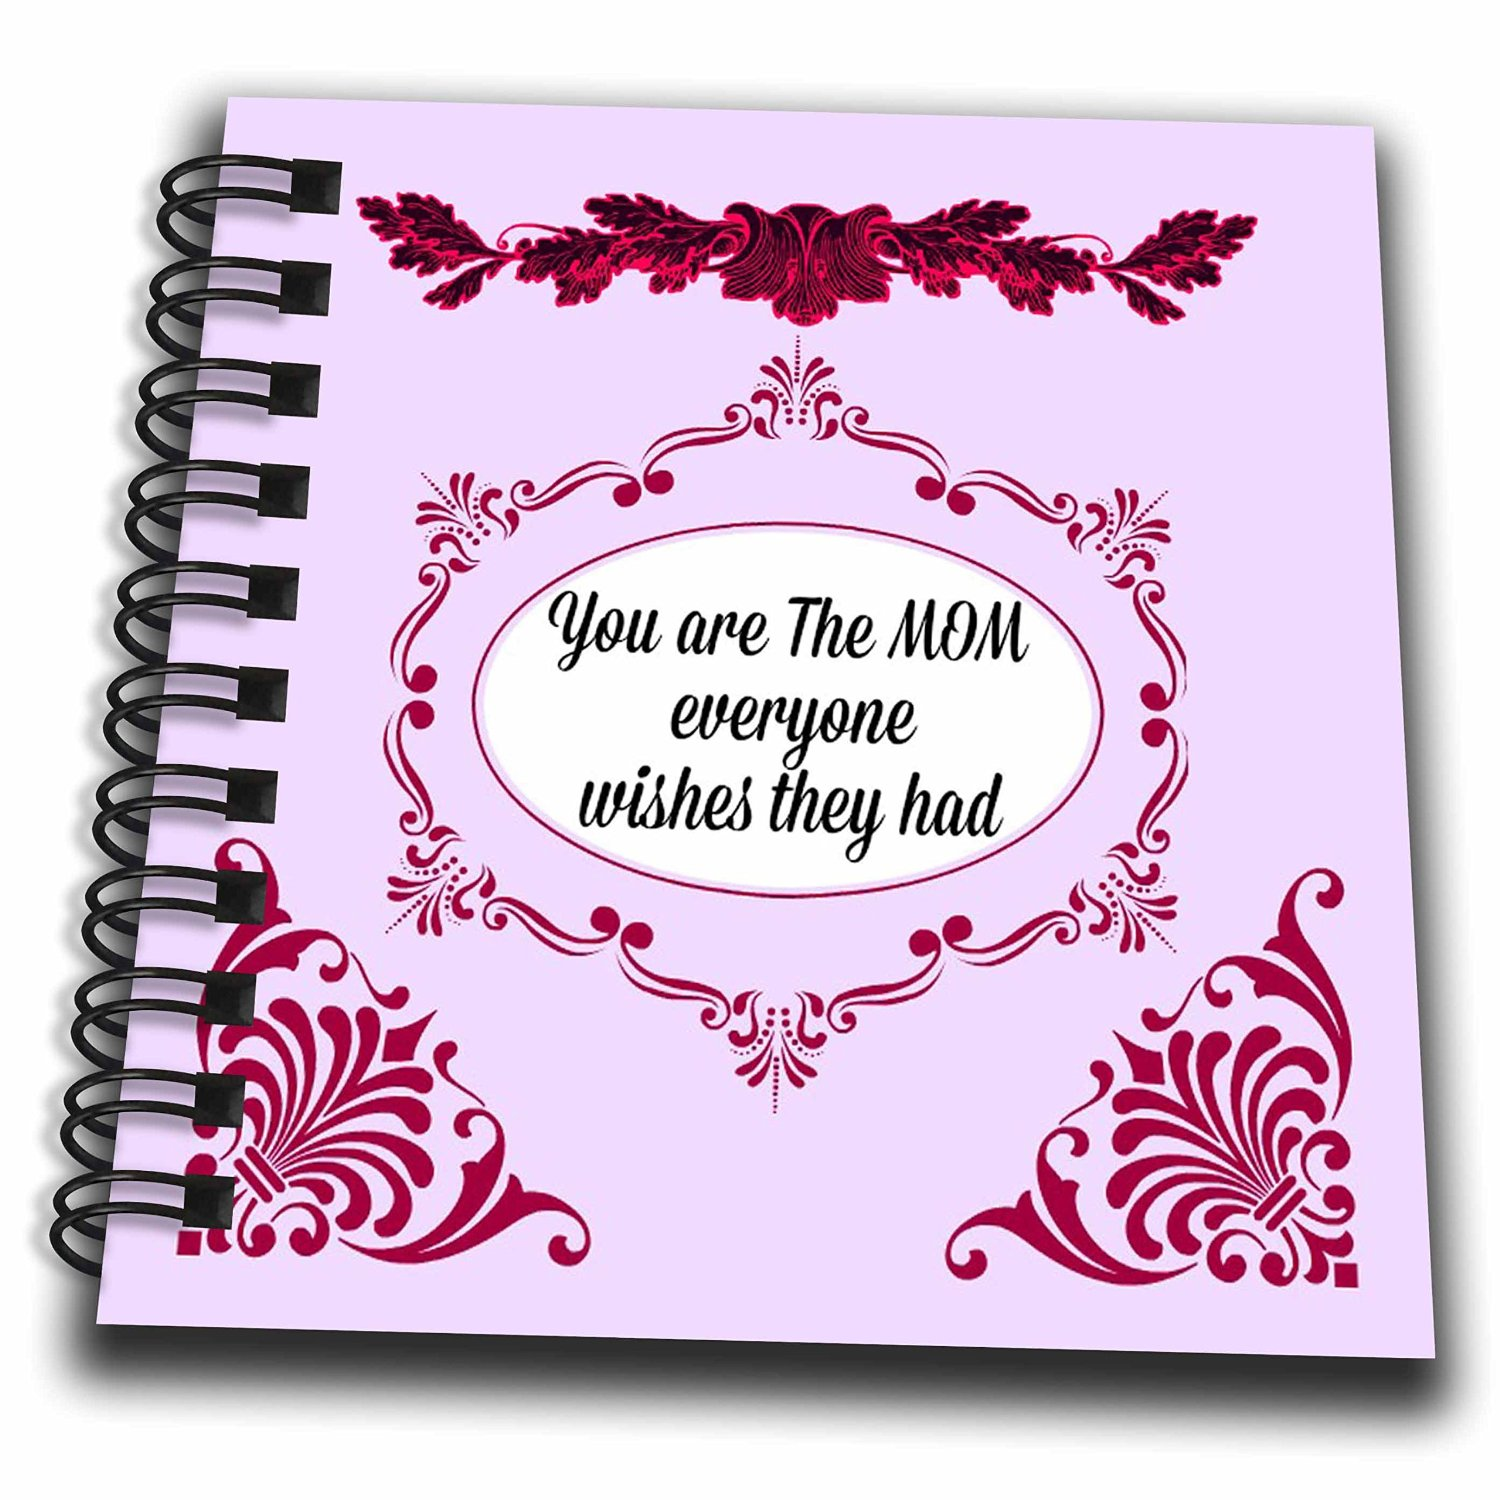 RinaPiro - Quotes - You are the mom everyone wishes they had. Popular saying - Mini Notepad 4 x 4 inch (db_214166_3)